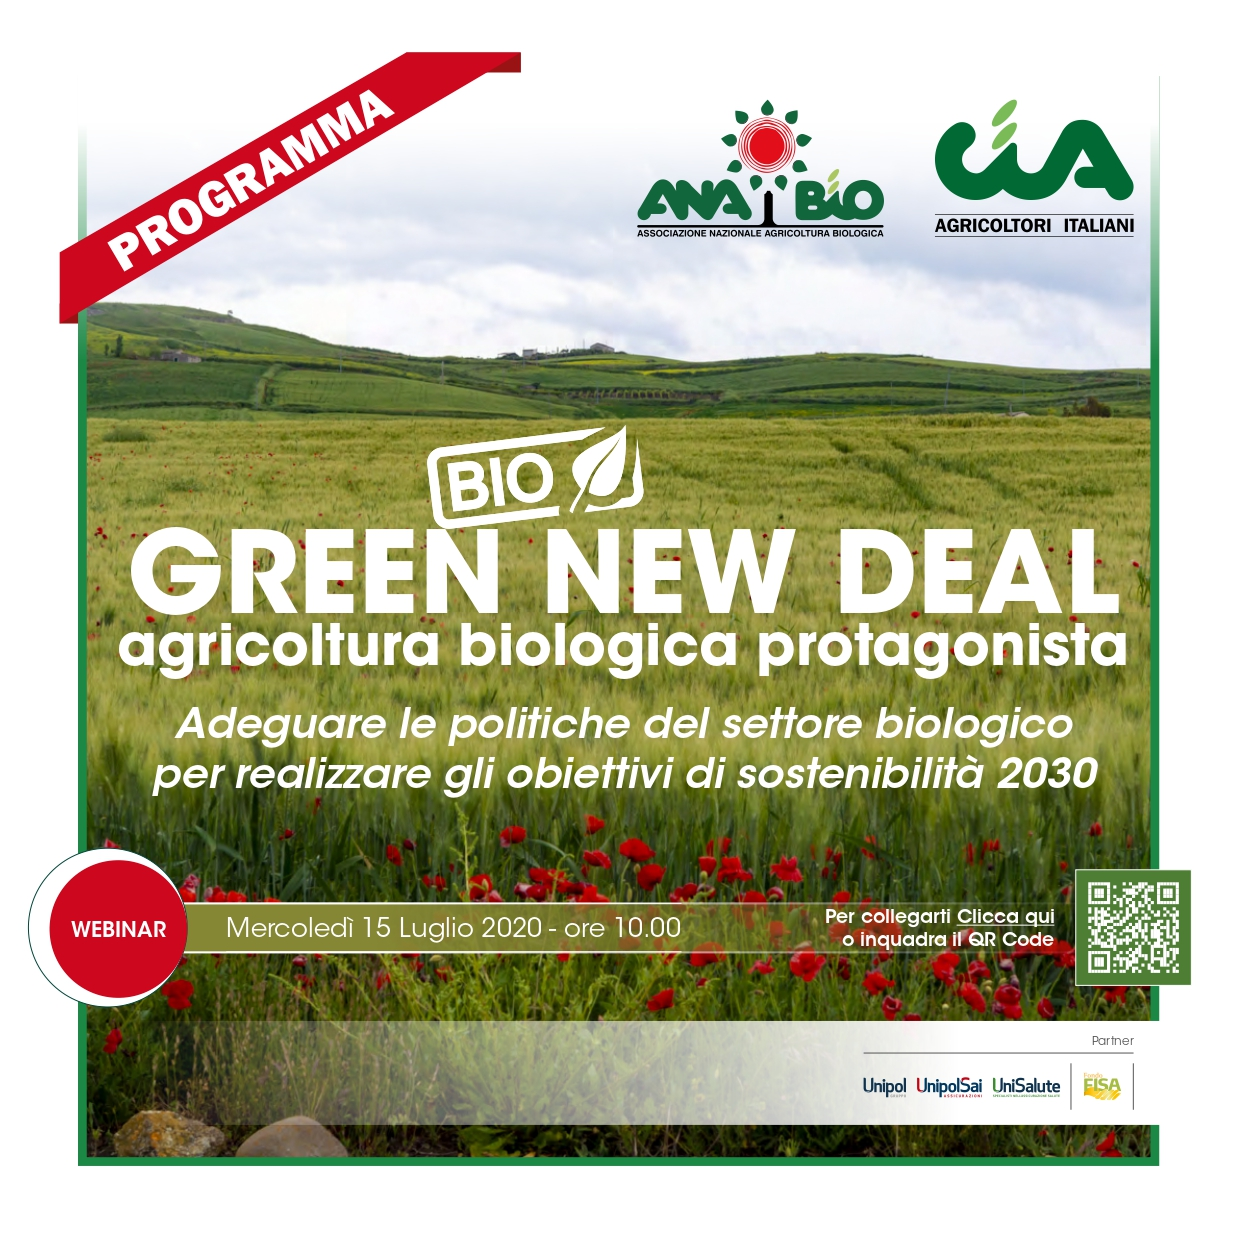 invito green new deal biopage 00 faaee8246a